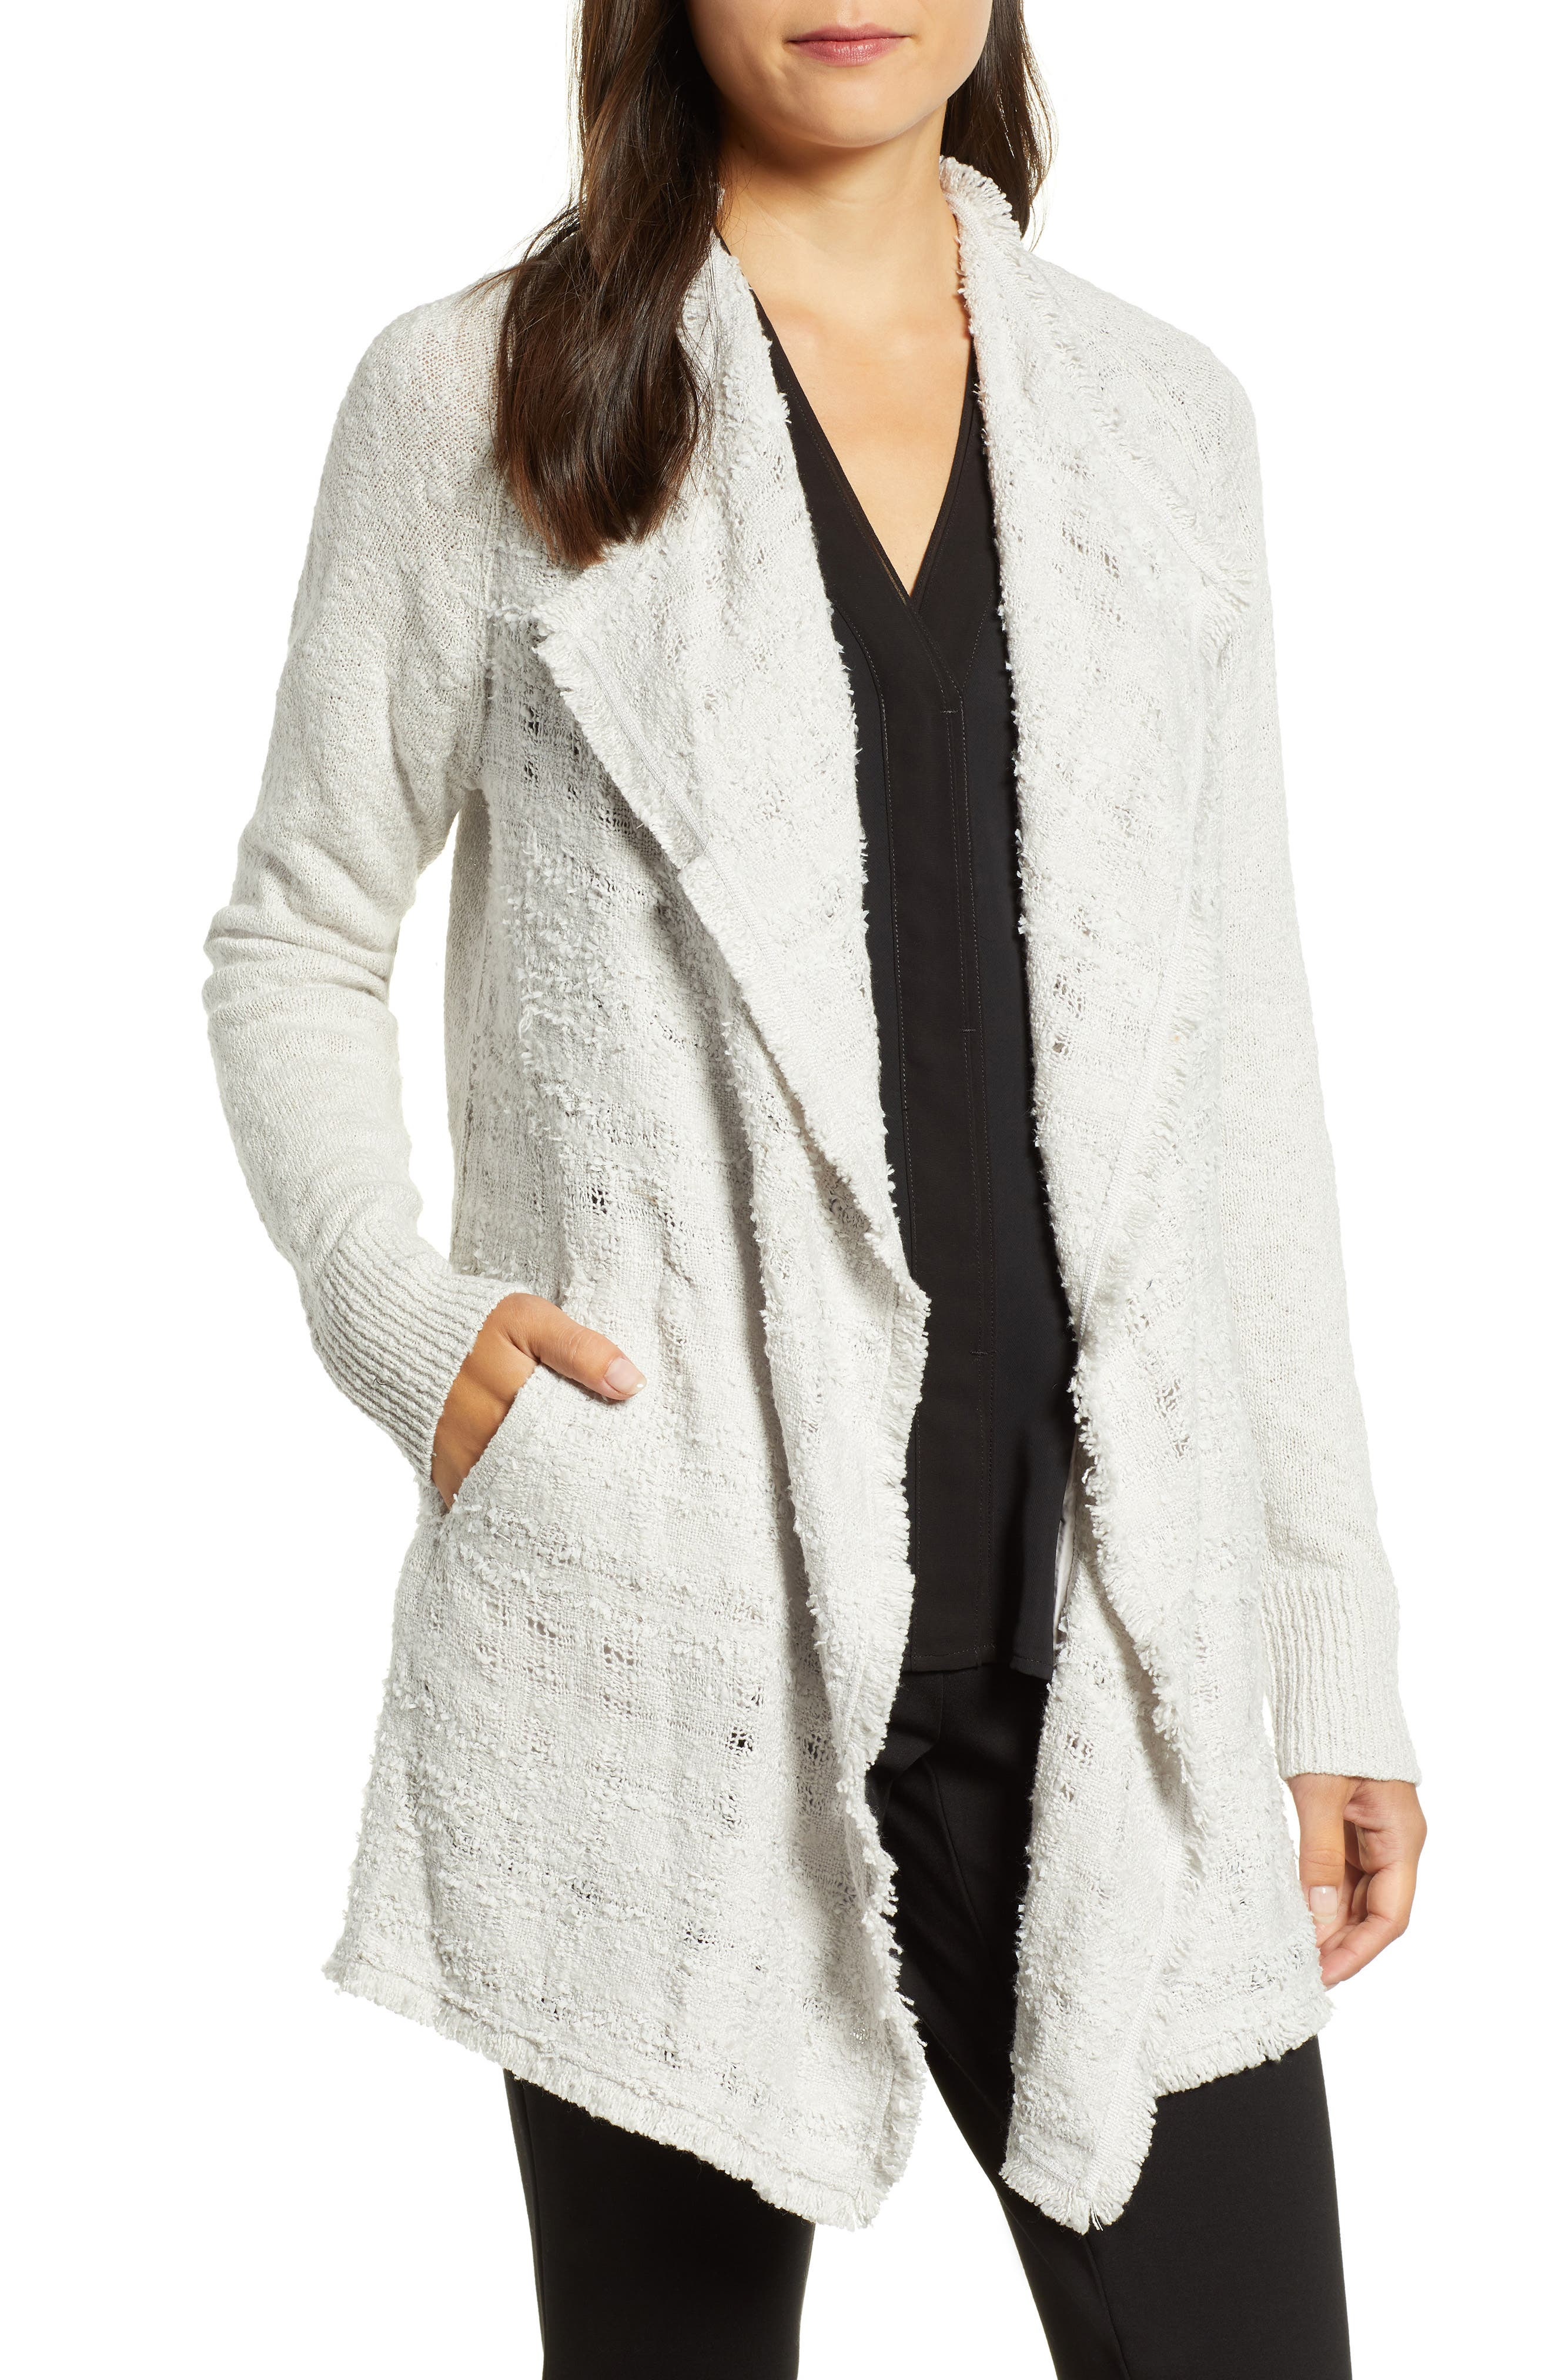 Carefree Cardigan,                             Main thumbnail 1, color,                             FROST